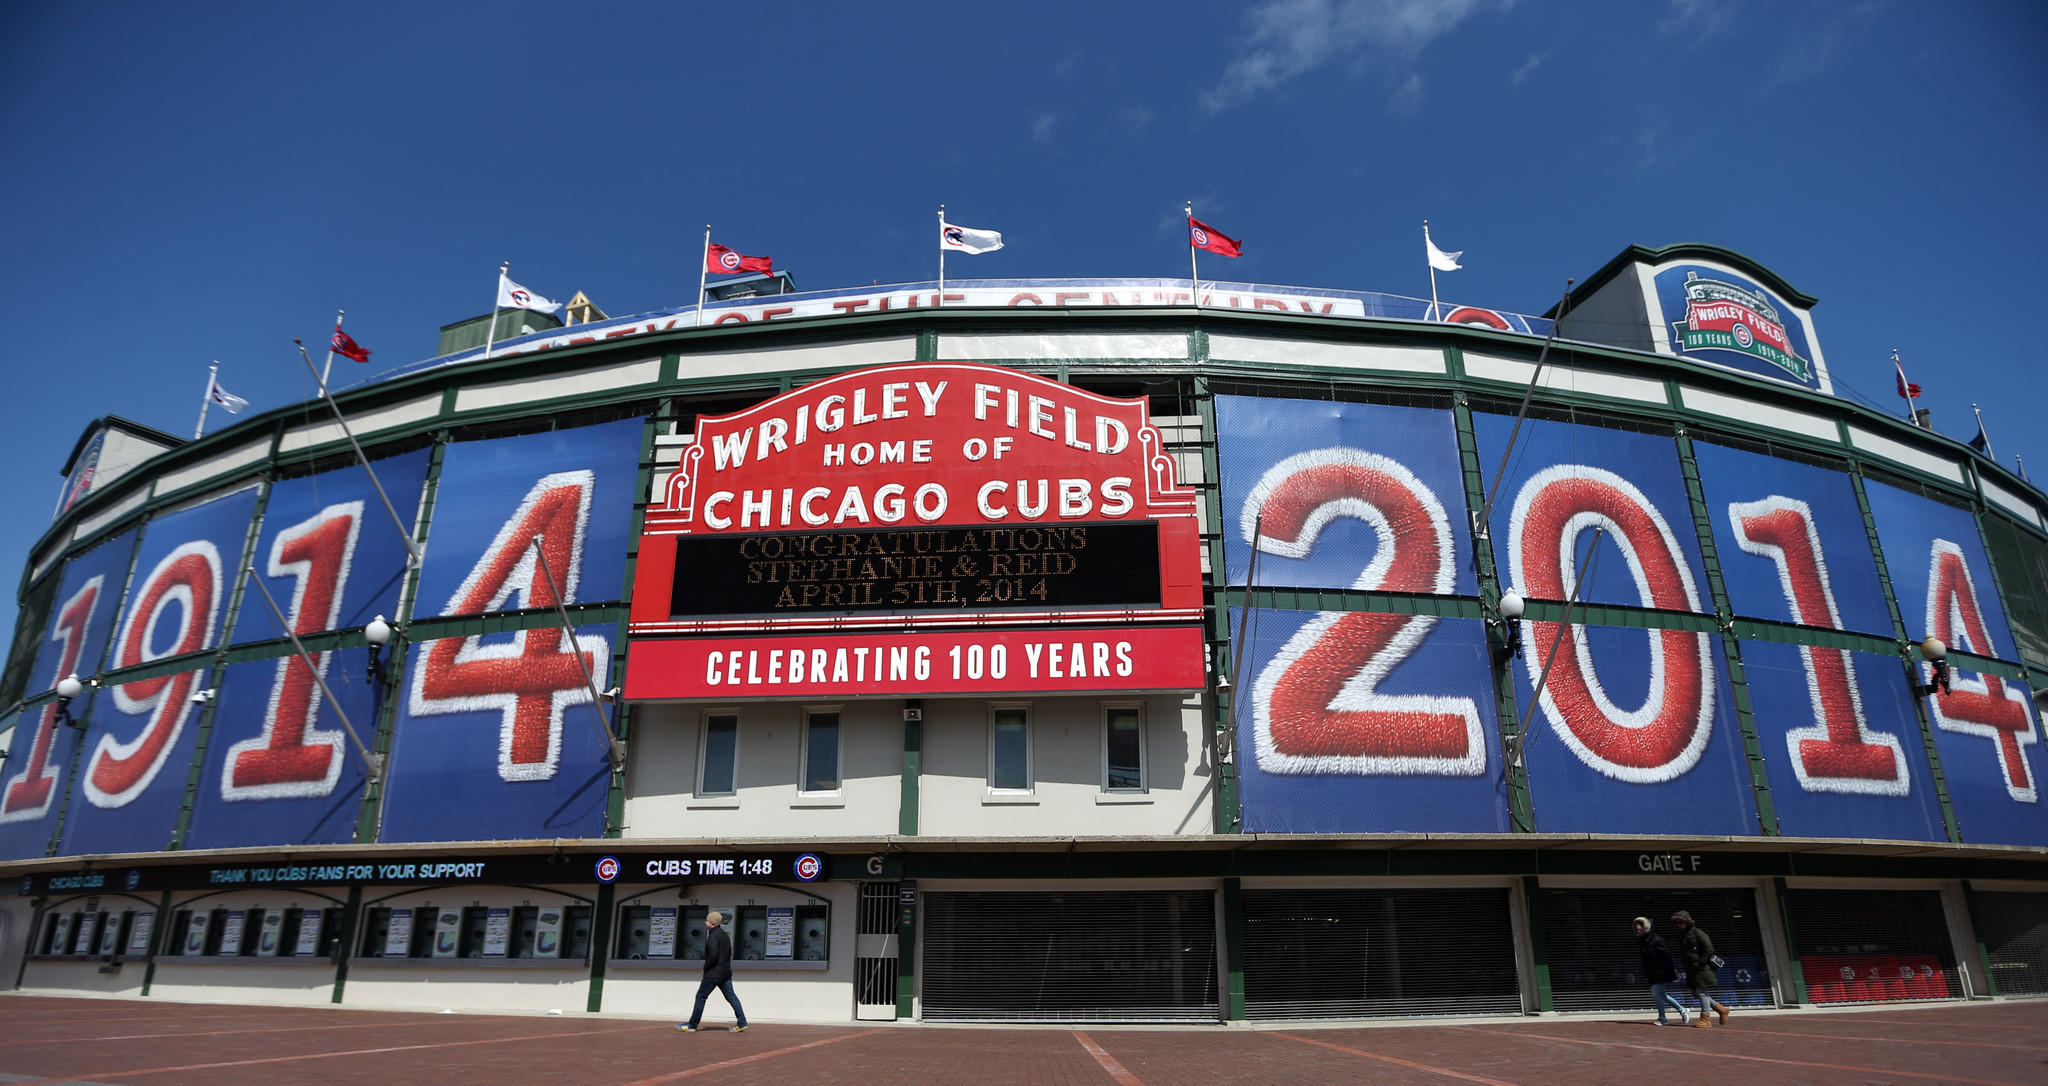 The corner of Sheffield and Addison is prepared on Tuesday, April 1, 2014 for the home opener at Wrigley Field.